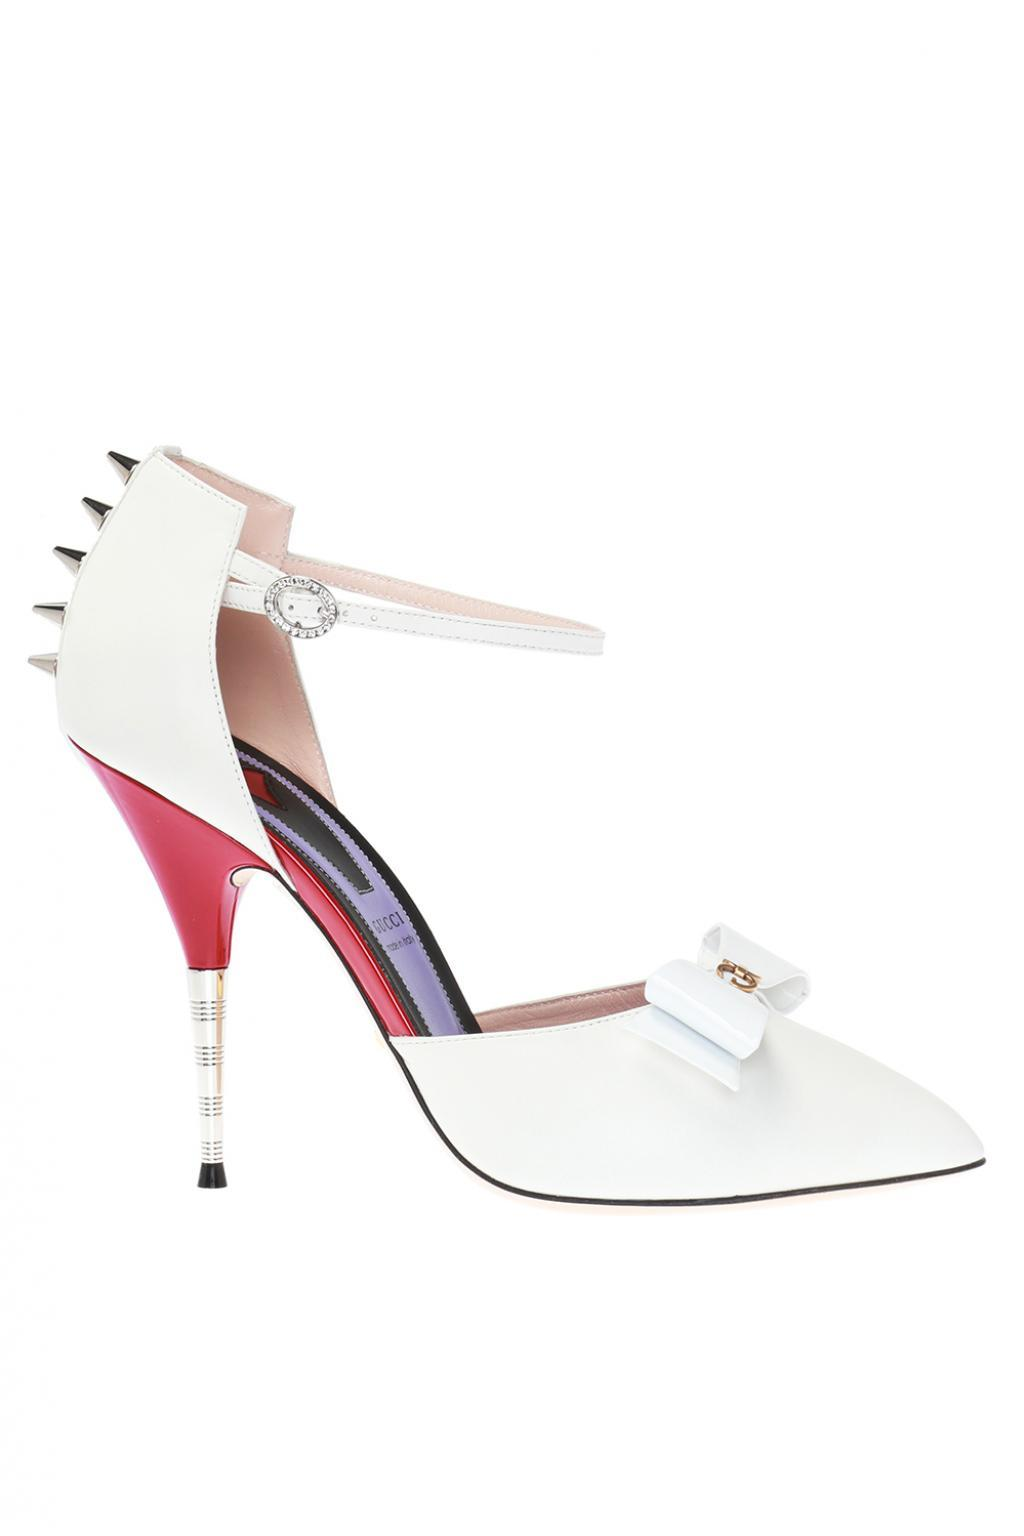 a58610e3603 Lyst - Gucci Spike Stud Pumps in White - Save 5%